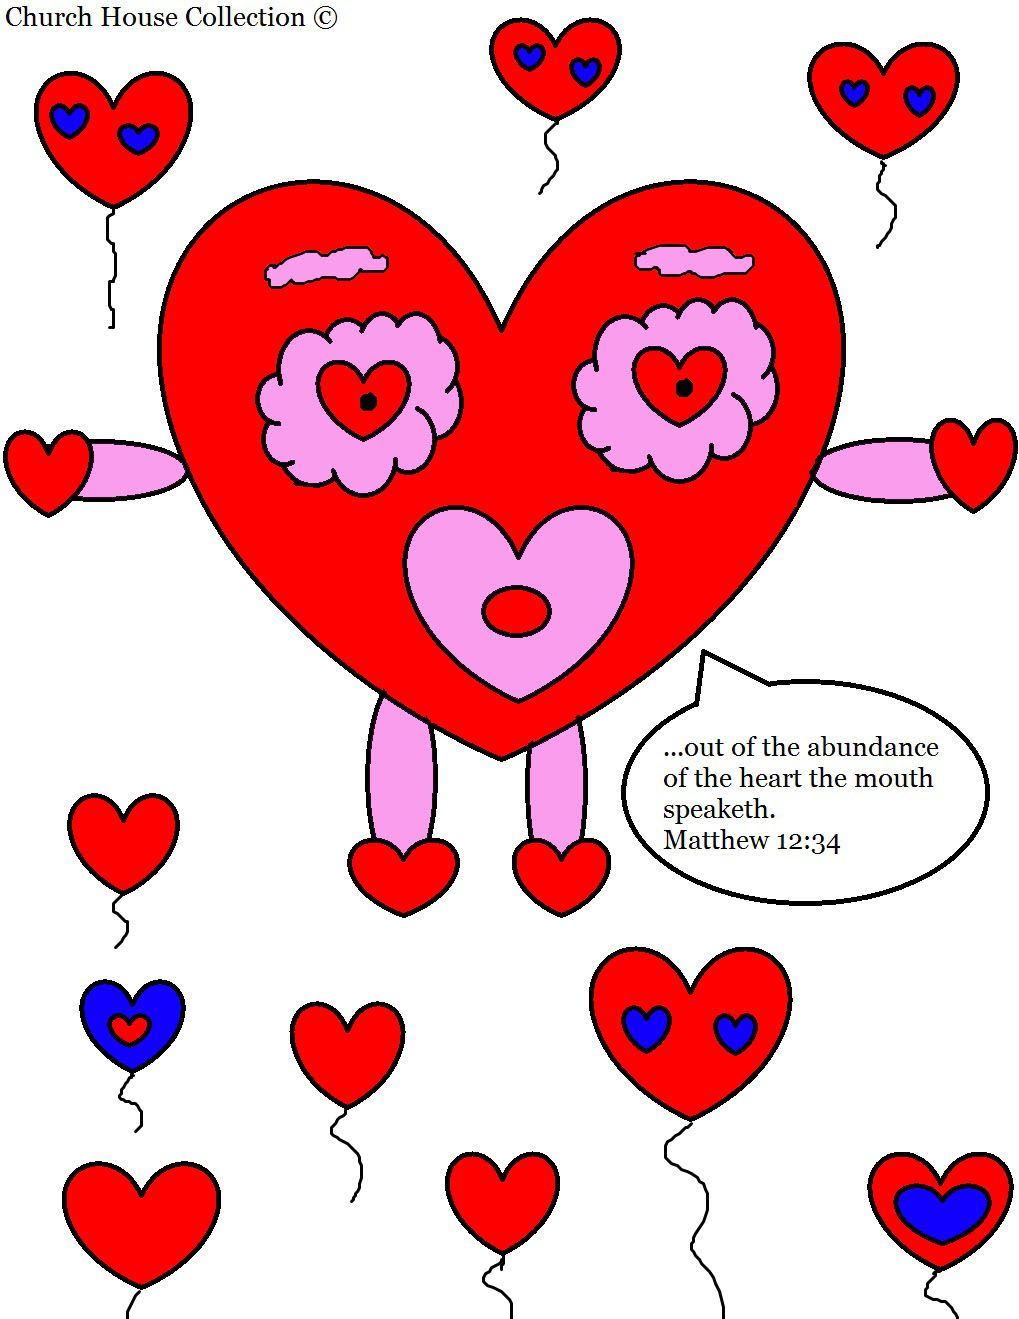 church house collection blog valentines day heart coloring page for sunday school matthew 12